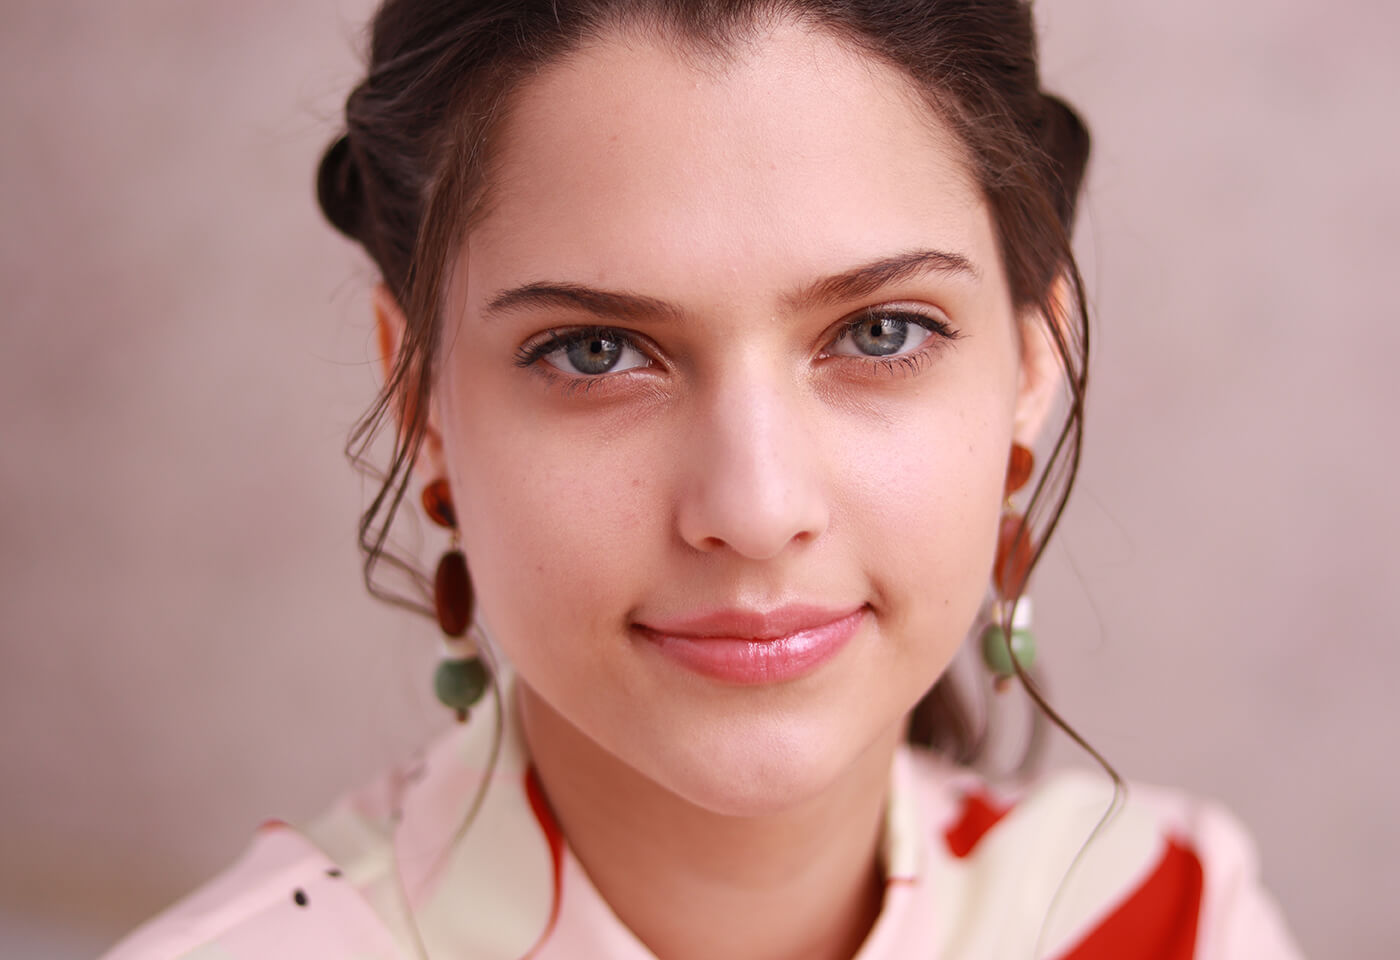 Young woman with brown hair and dangling earrings smiling in front of a pale backdrop, photographed with the Canon EOS M50